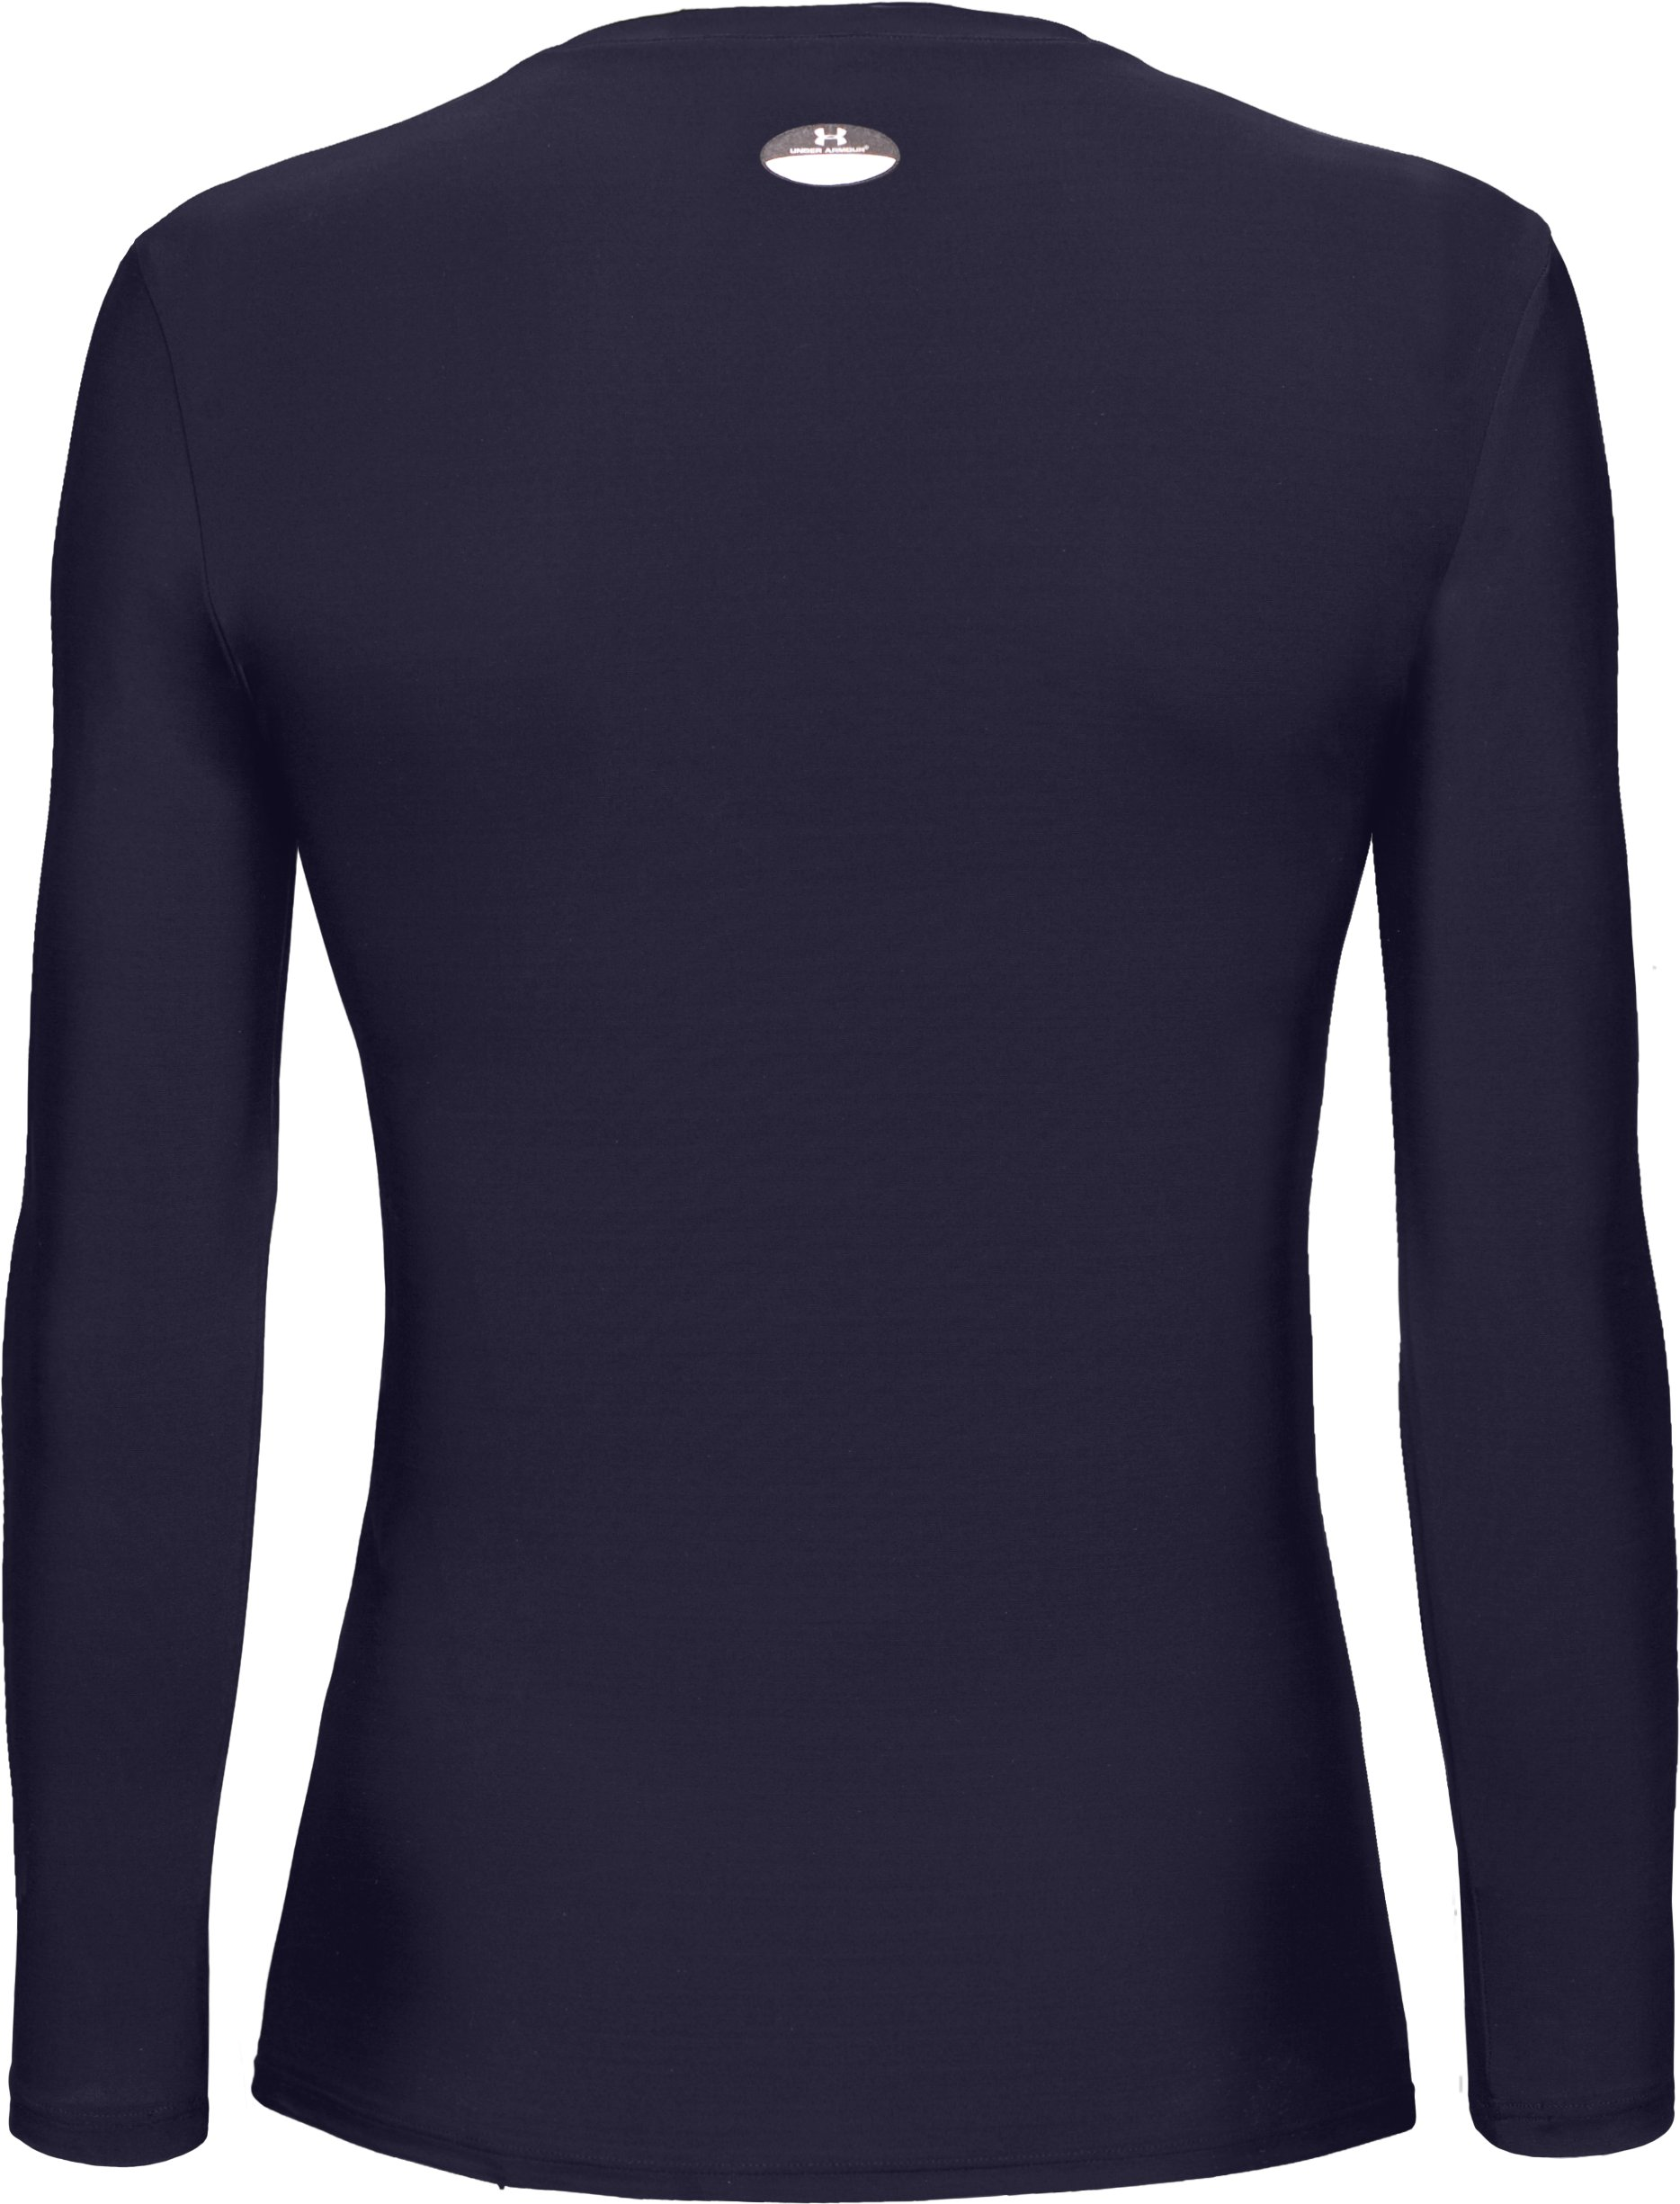 Women's HeatGear® Long Sleeve Compression T-Shirt, Midnight Navy